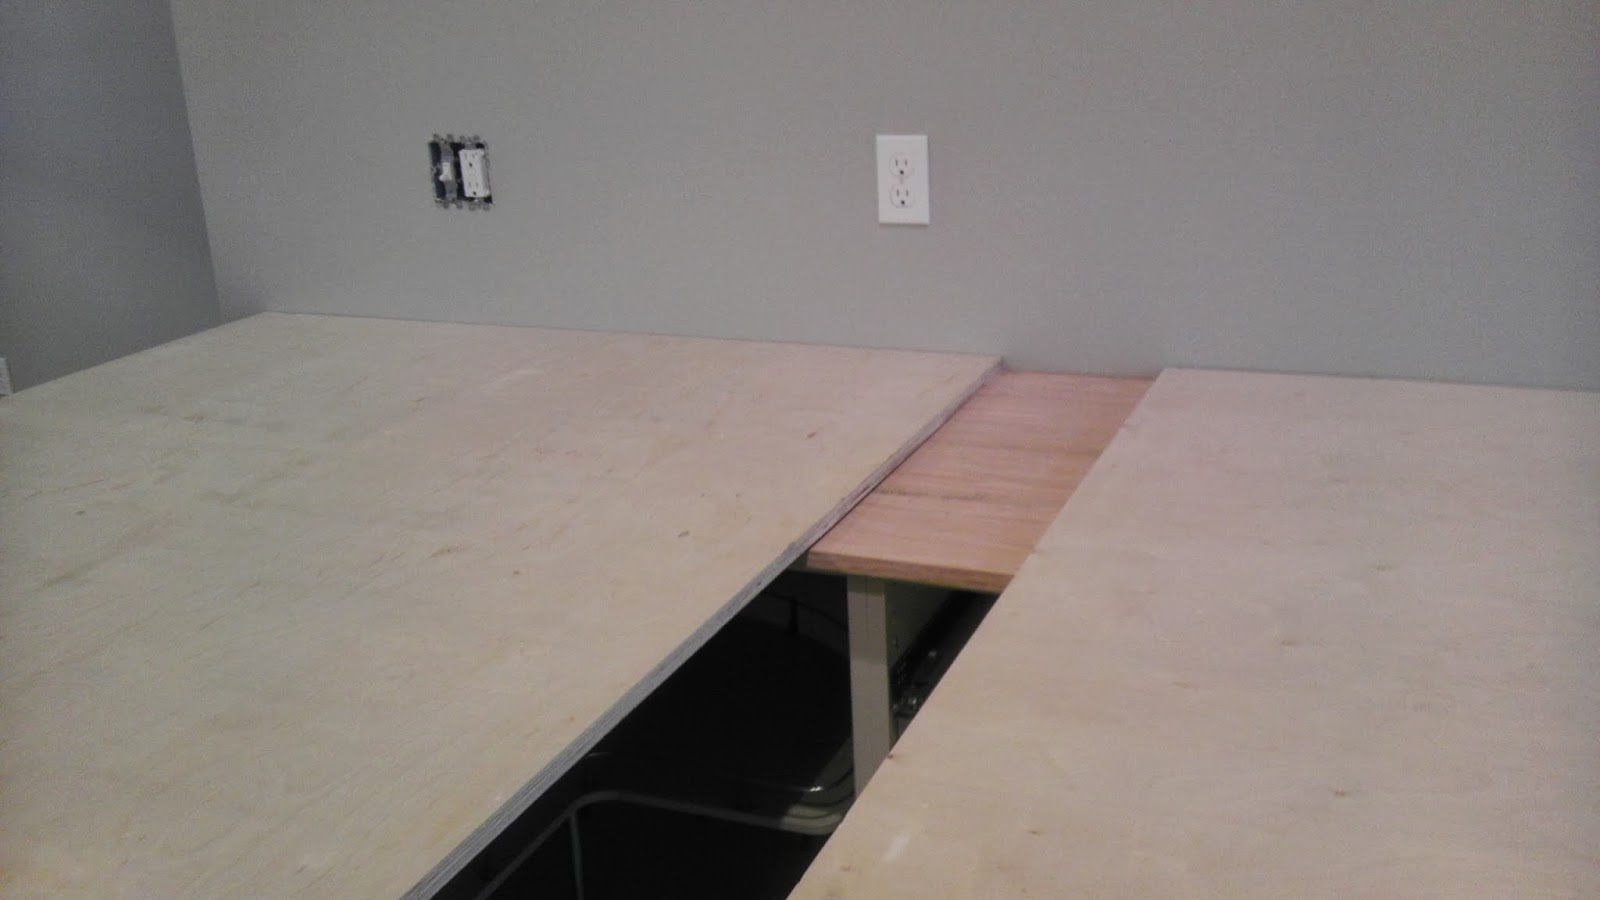 Once upon an acre installing zinc countertops on ikea cabinets installing zinc countertops on ikea cabinets solutioingenieria Image collections